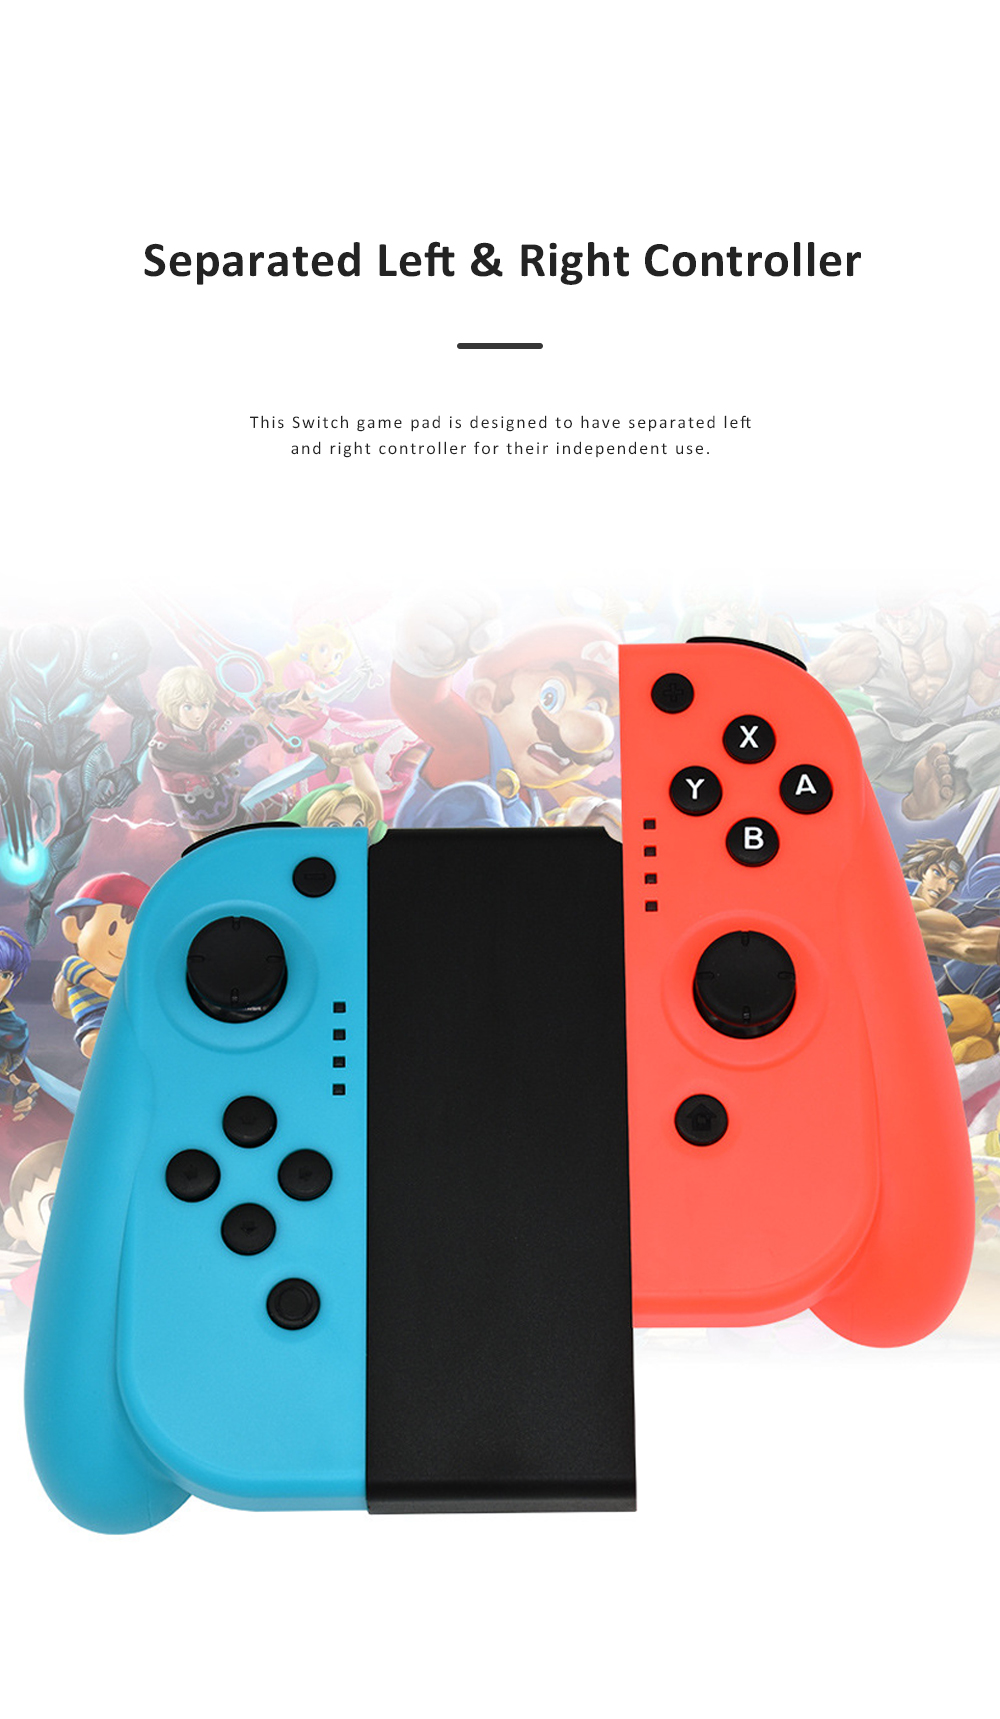 Left and Right Bluetooth Game Handle for Switch Game Machine Separated Repeating Vibrating Game Controller Wireless Joy-con Screen Shot Handles 1